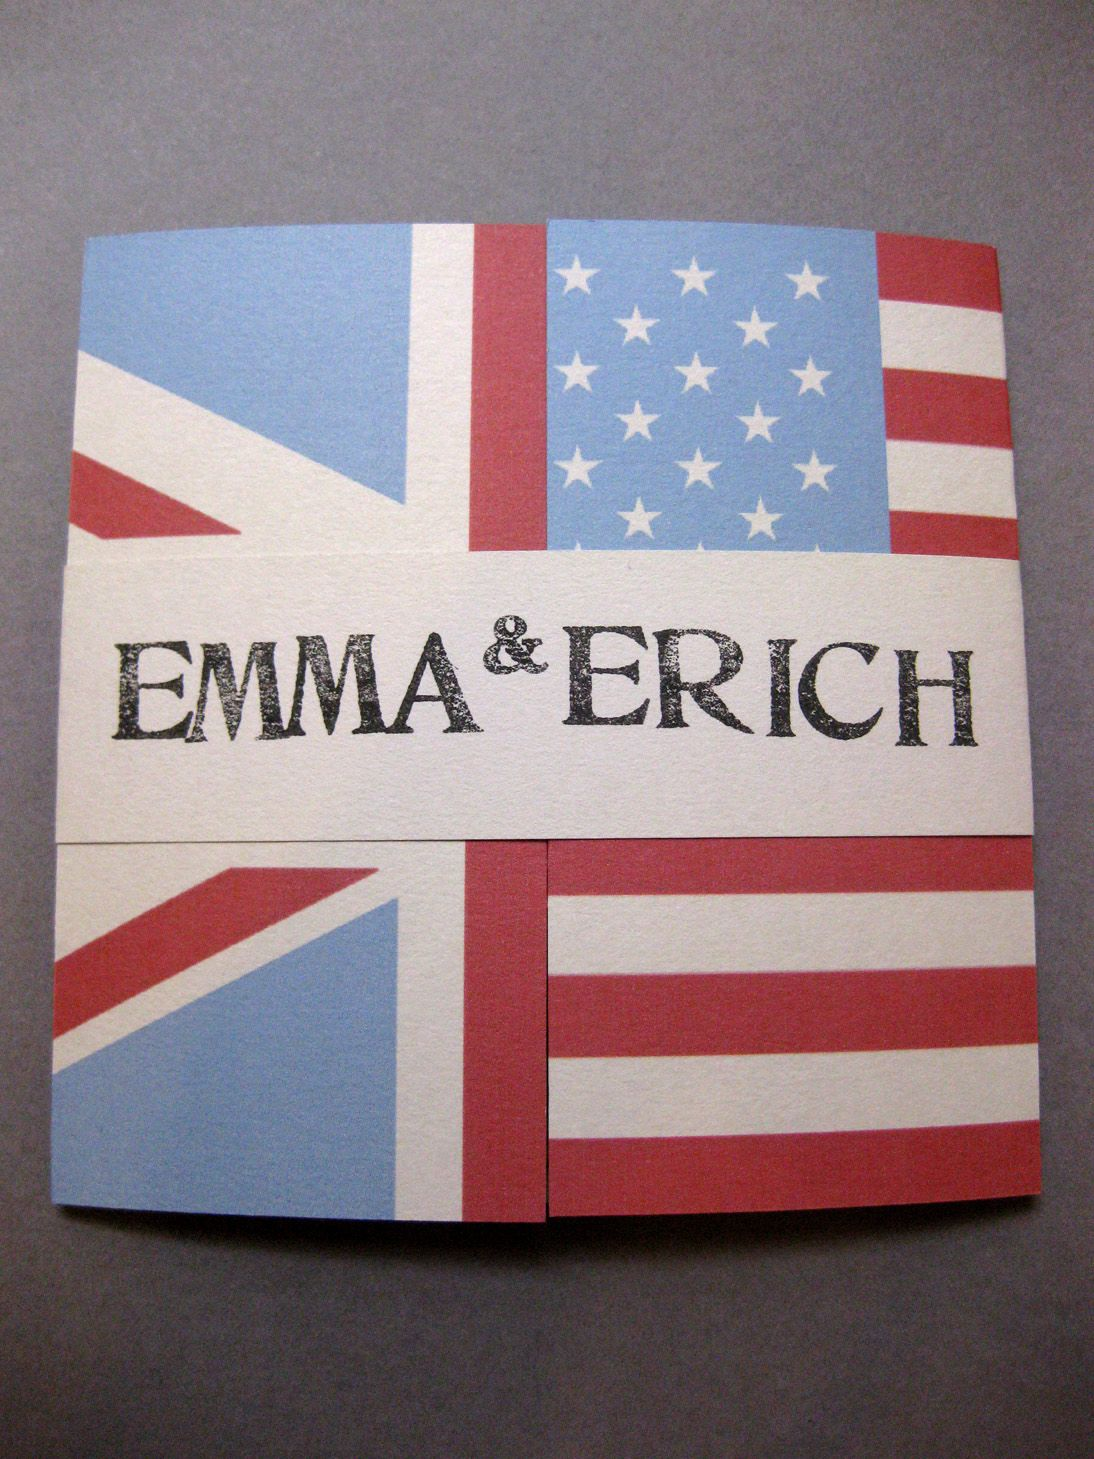 Handmade english and american flag wedding invitation For bespoke ...